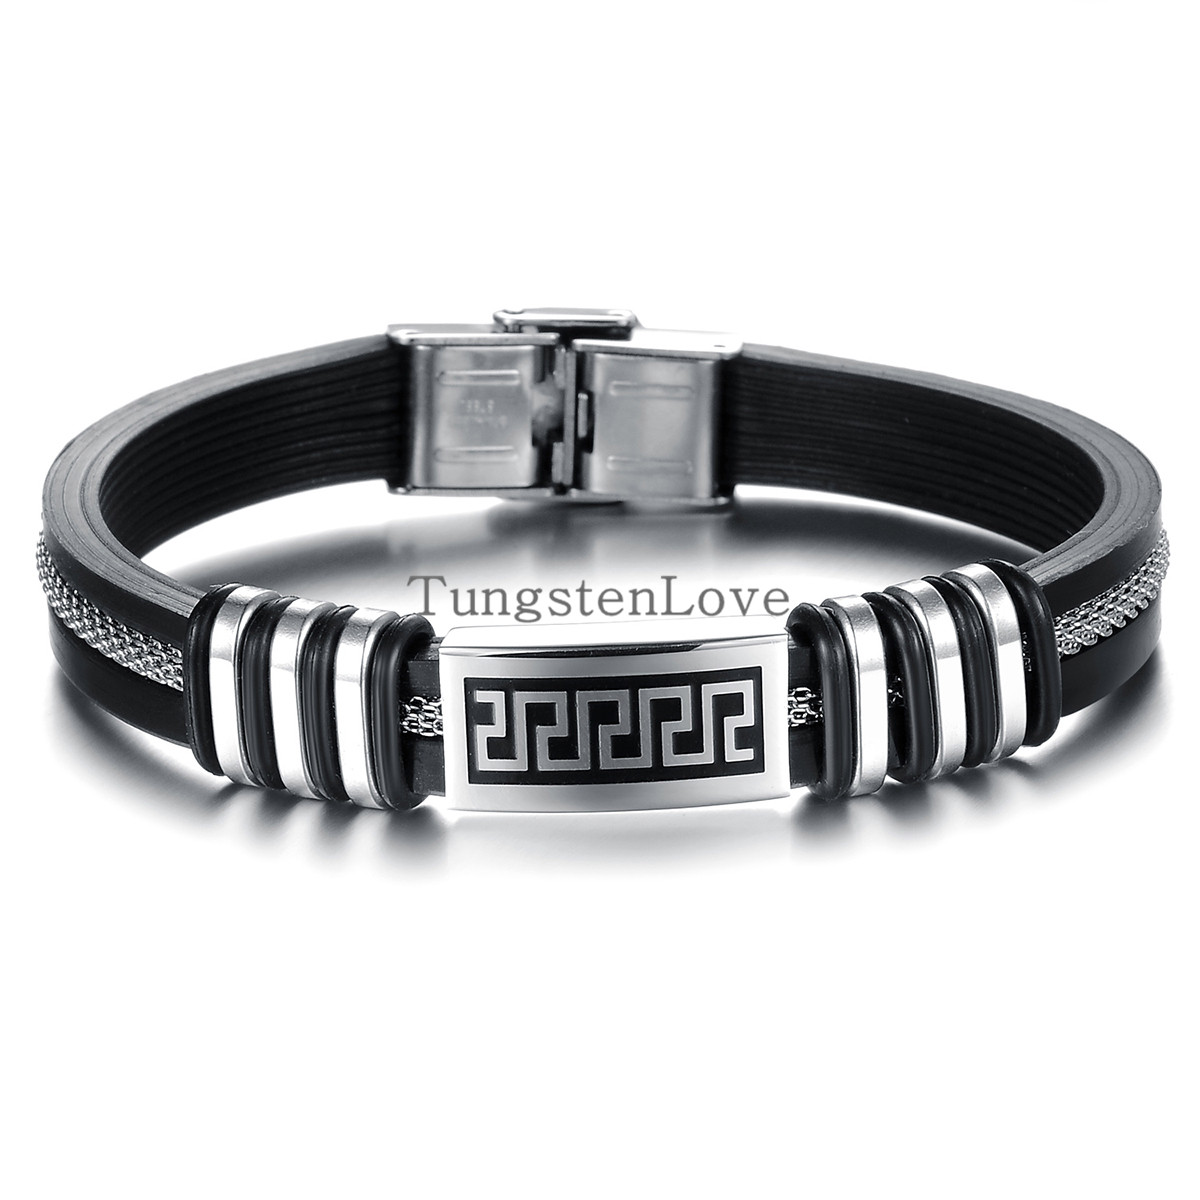 21cm*9mm Wholesale Fashion jewelry men great wall Rubber stainless steel bracelets vintage bangle male accessories(China (Mainland))